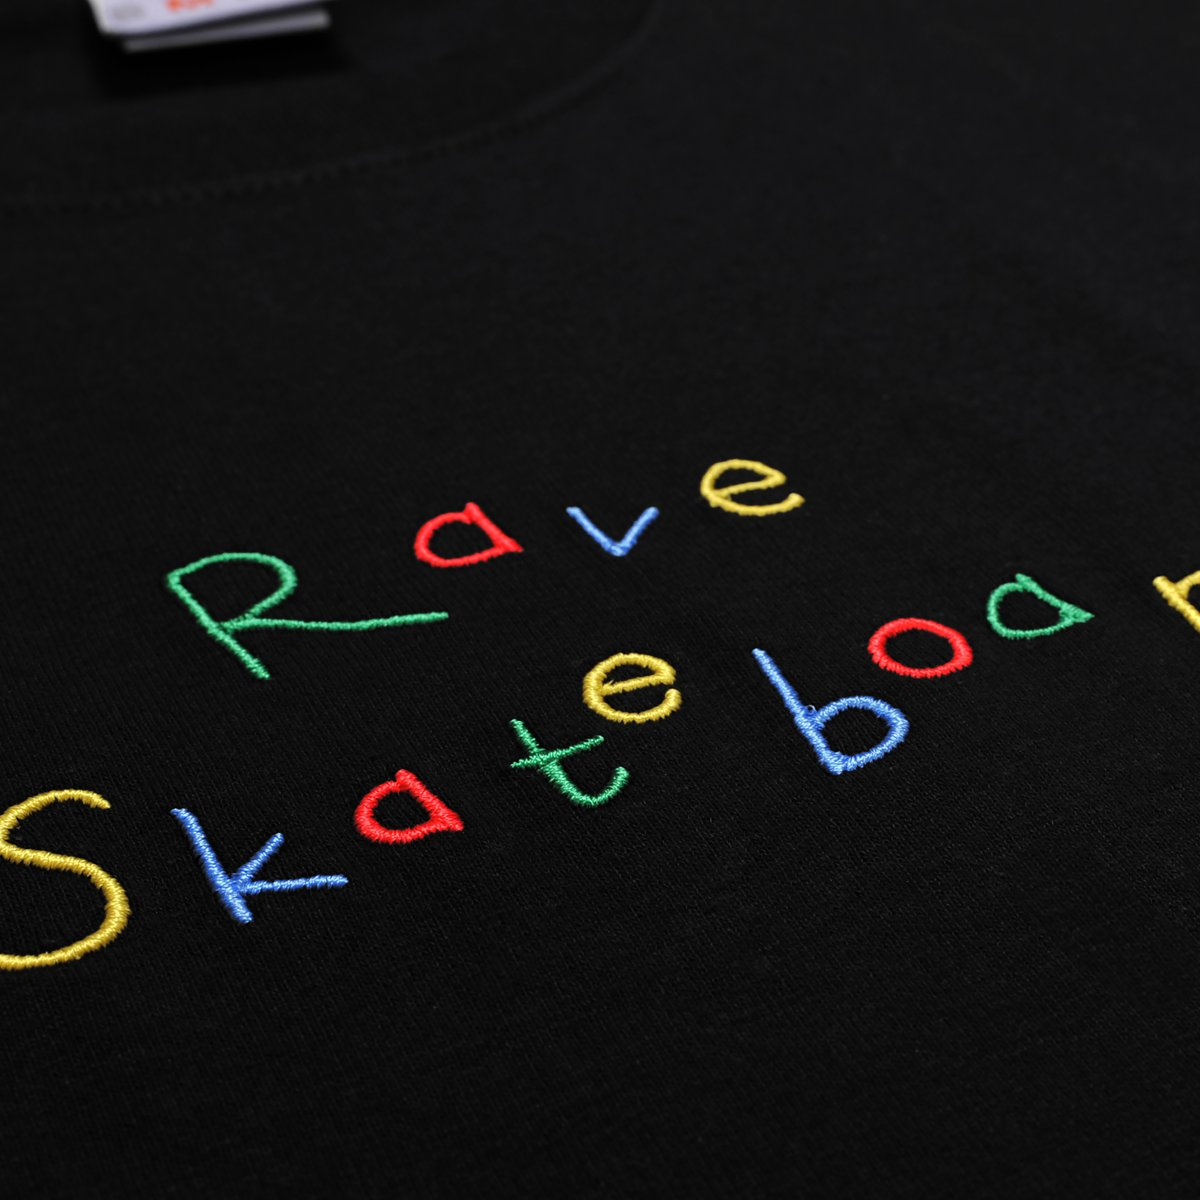 【RAVE SKATEBOARDS/レイブスケートボード】ZONKED PLANET TEE Tシャツ / BLACK